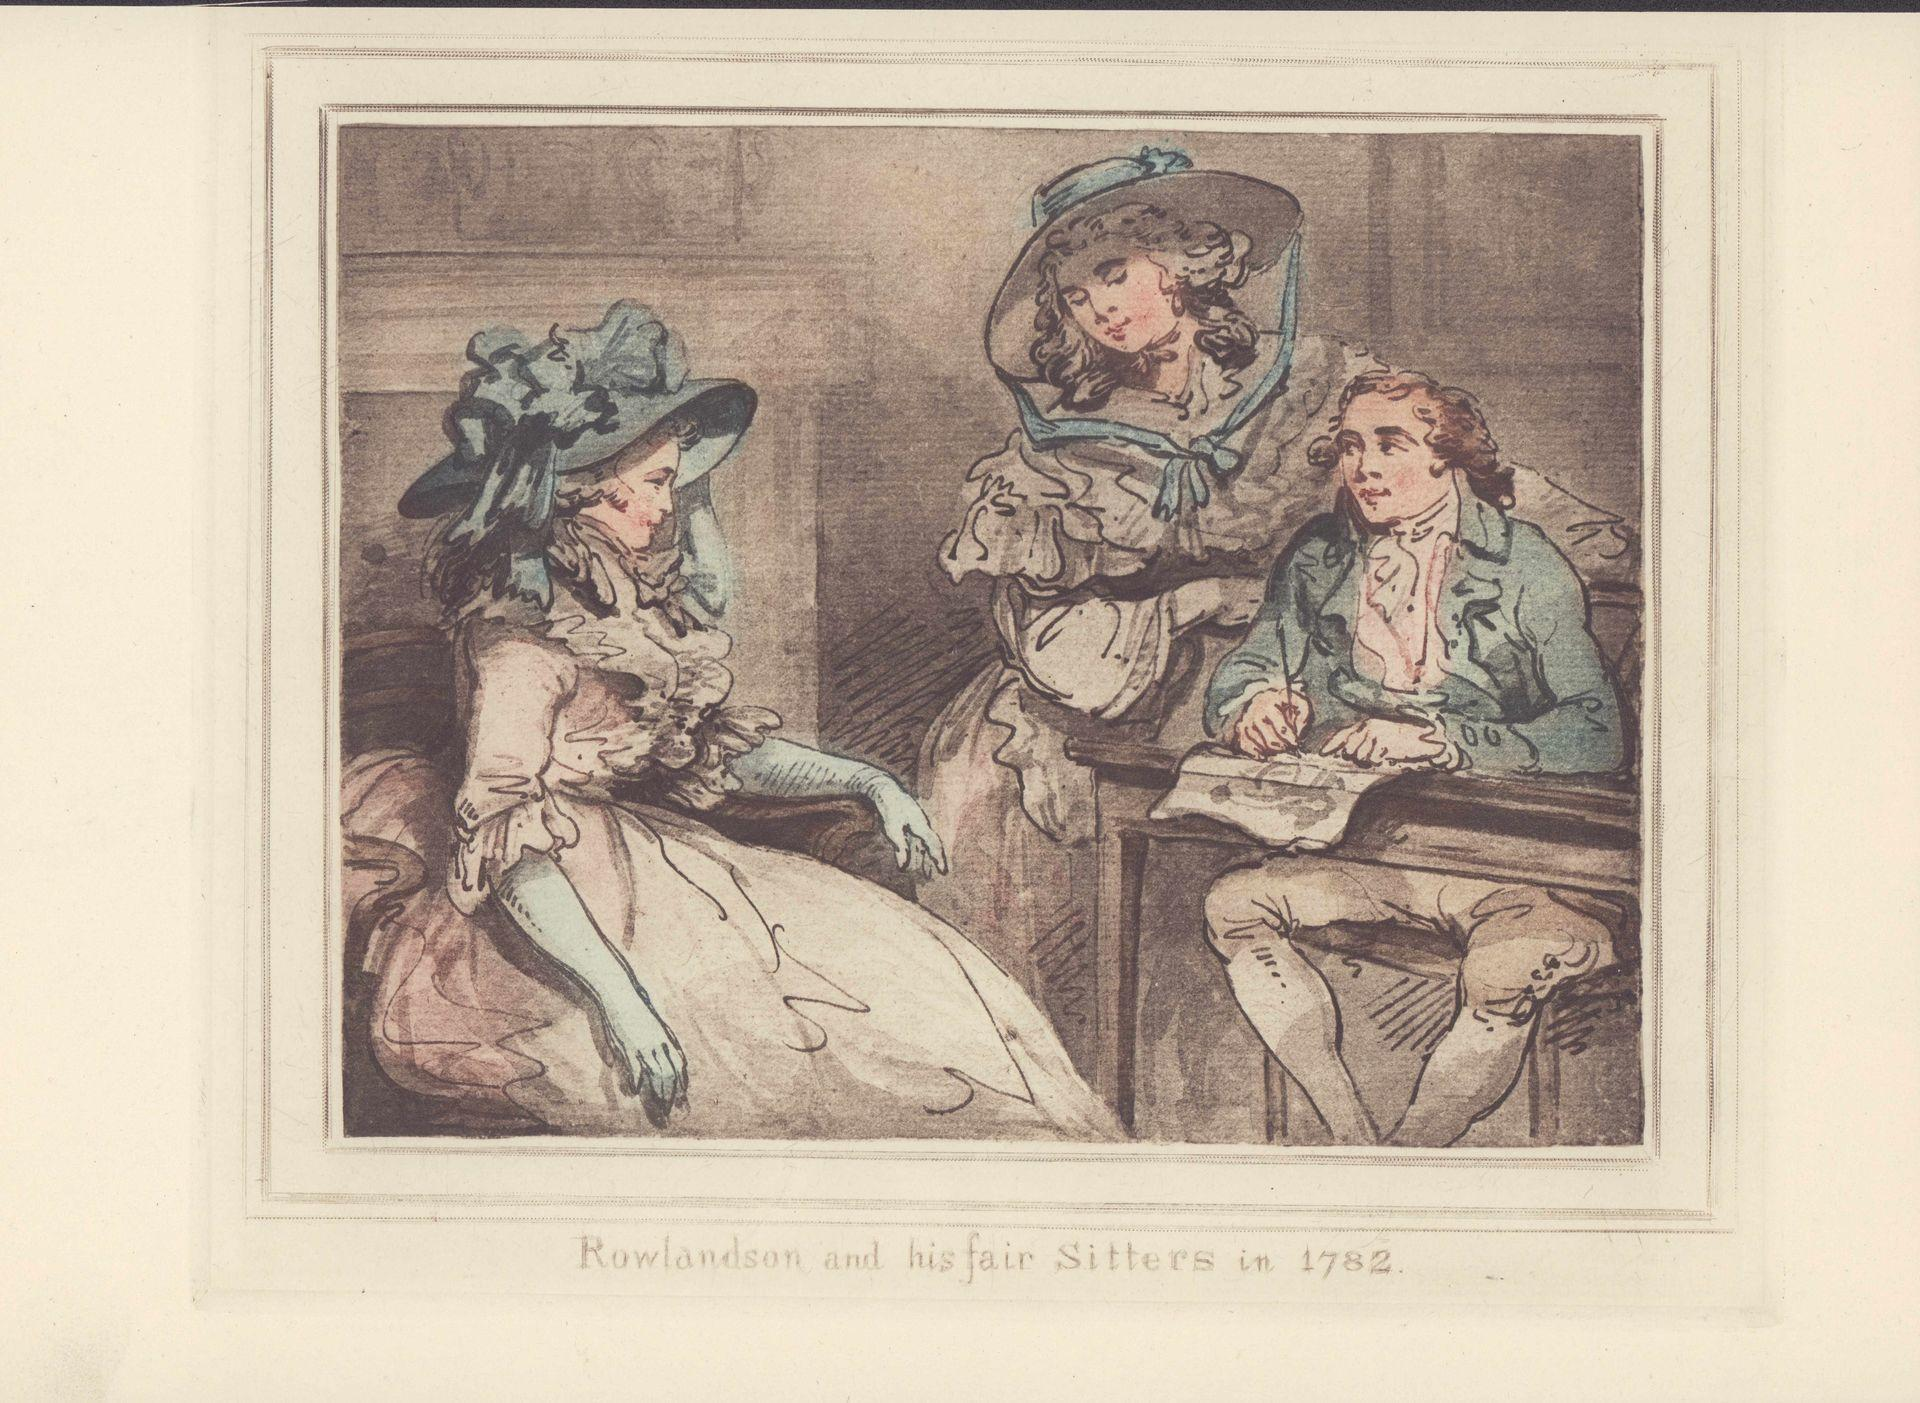 Rowlandson and his fair sitters in 1782.: Rowlandson, Thomas: